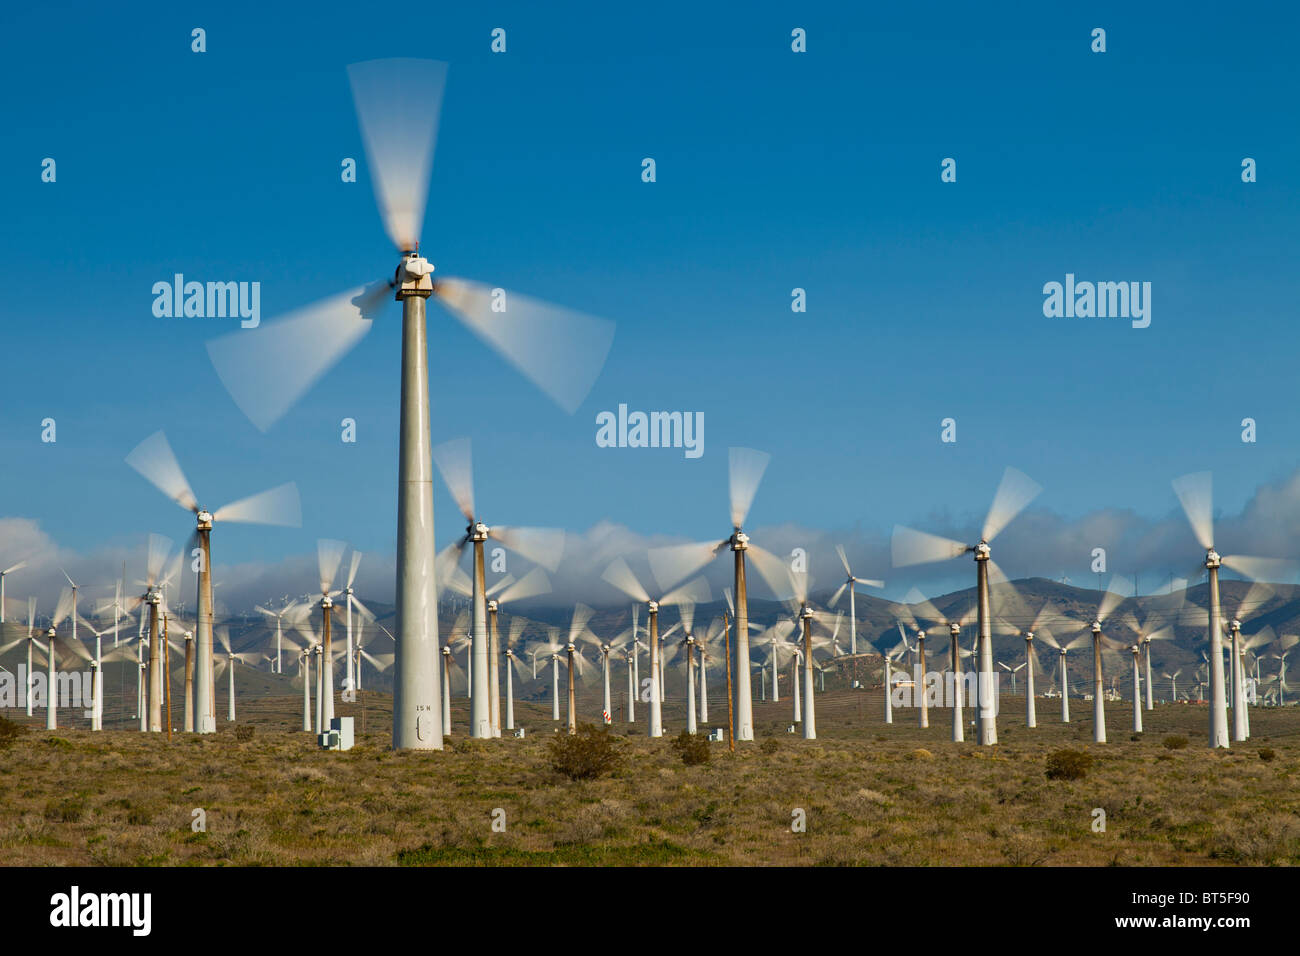 An AES Corporation wind farm in the Mohave Desert, California. - Stock Image